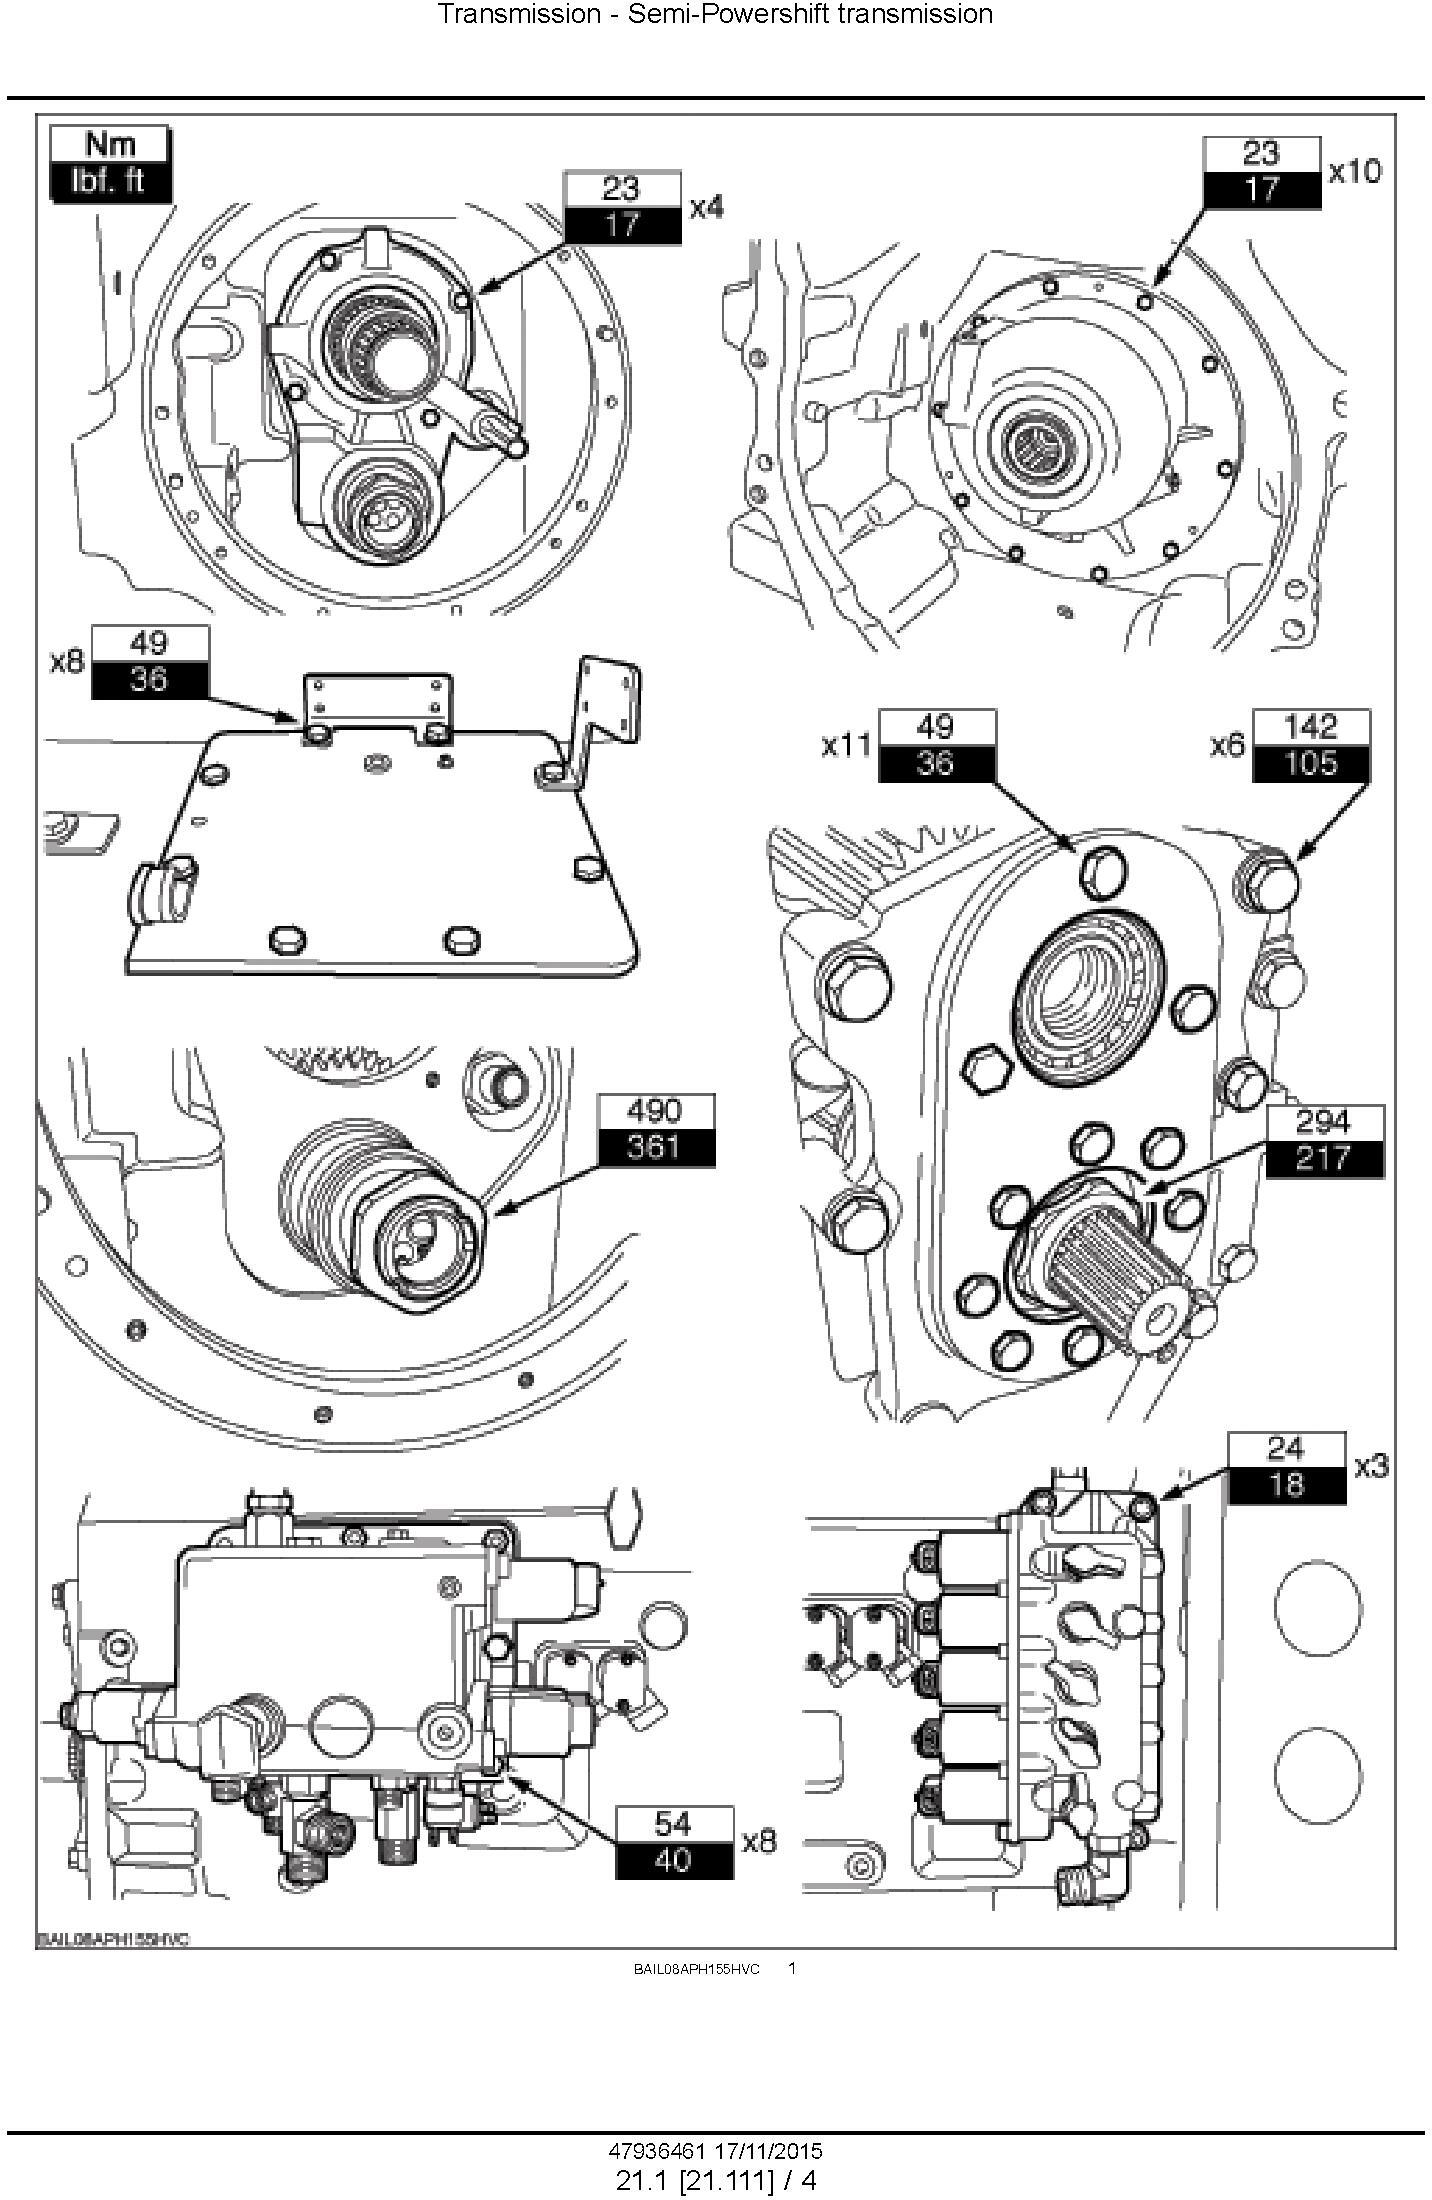 New Holland T7.175, T7.190, T7.210, T7.225 Auto Command Stage IV Tractors Service Manual (Europe) - 3